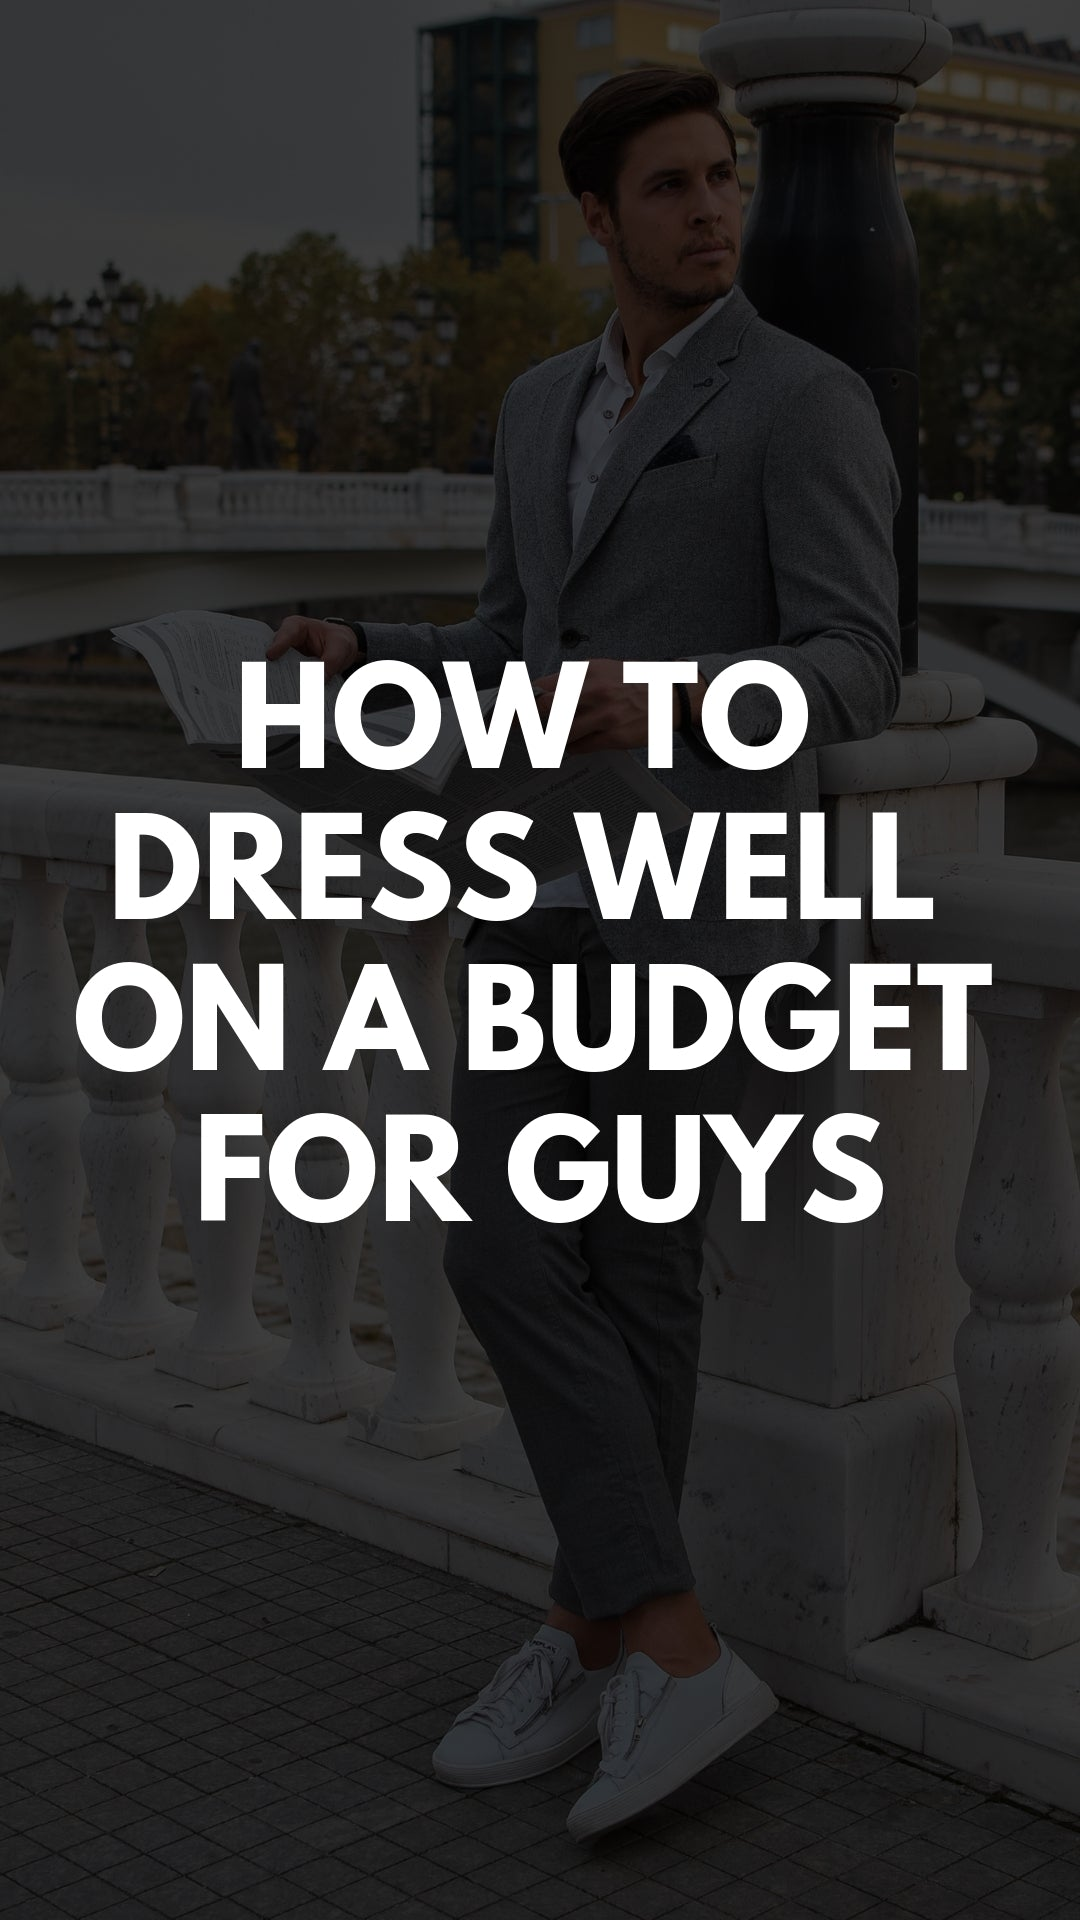 How To Dress Well On a Budget For Guys #fashiontips #styletips